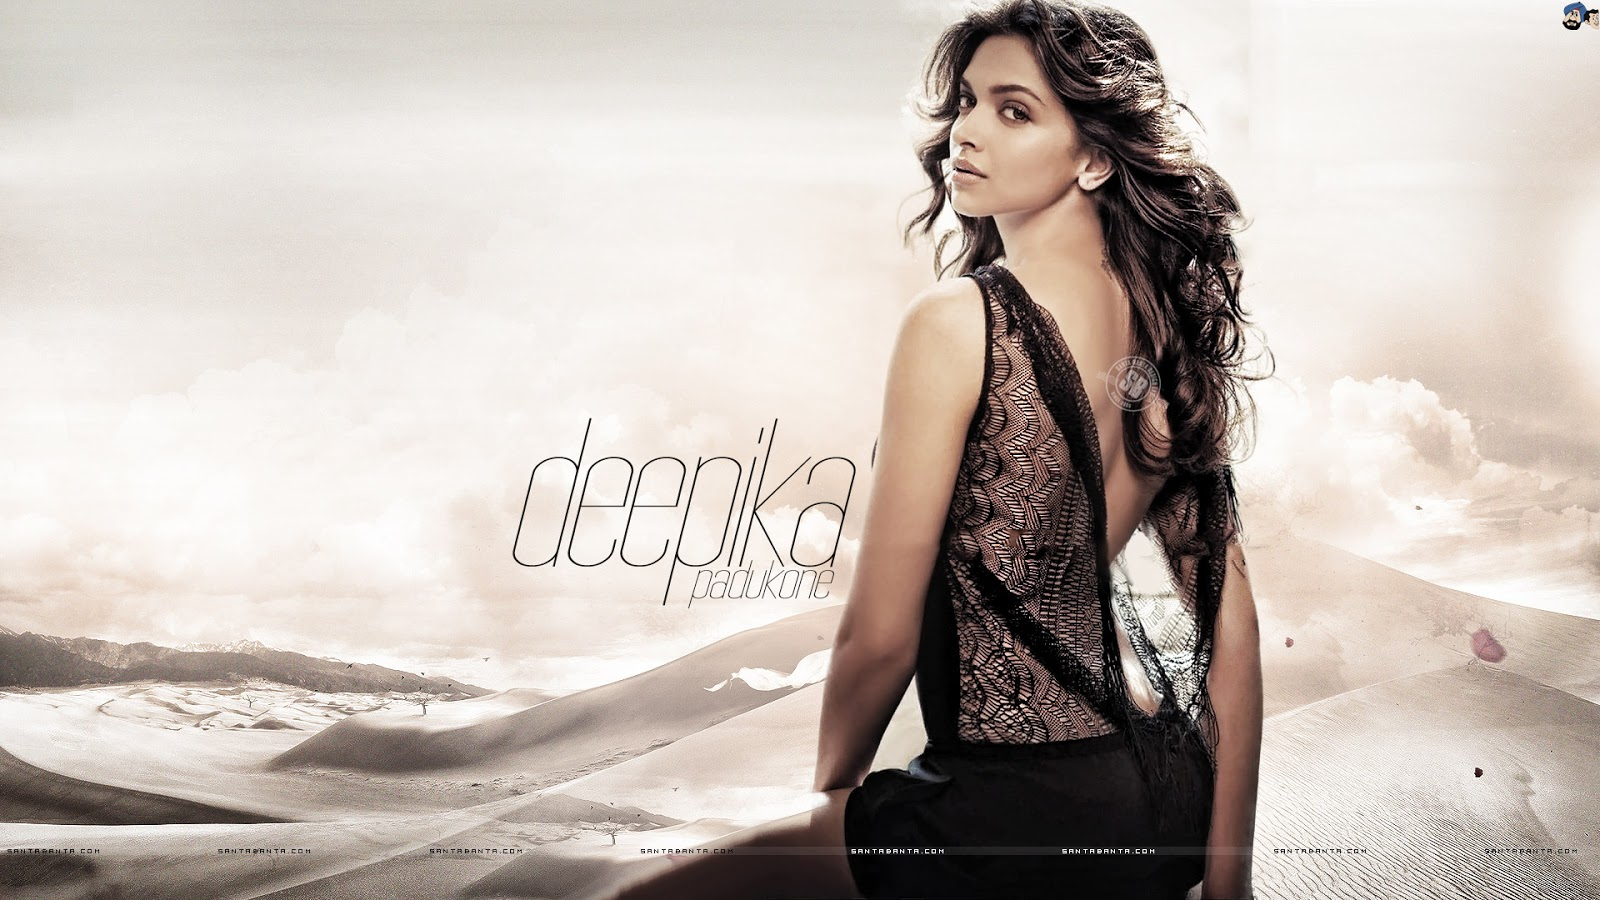 Deepika Padukone Wallapapers Collection: Deepika Padukone Sexiest Wallpapers Collection 2013